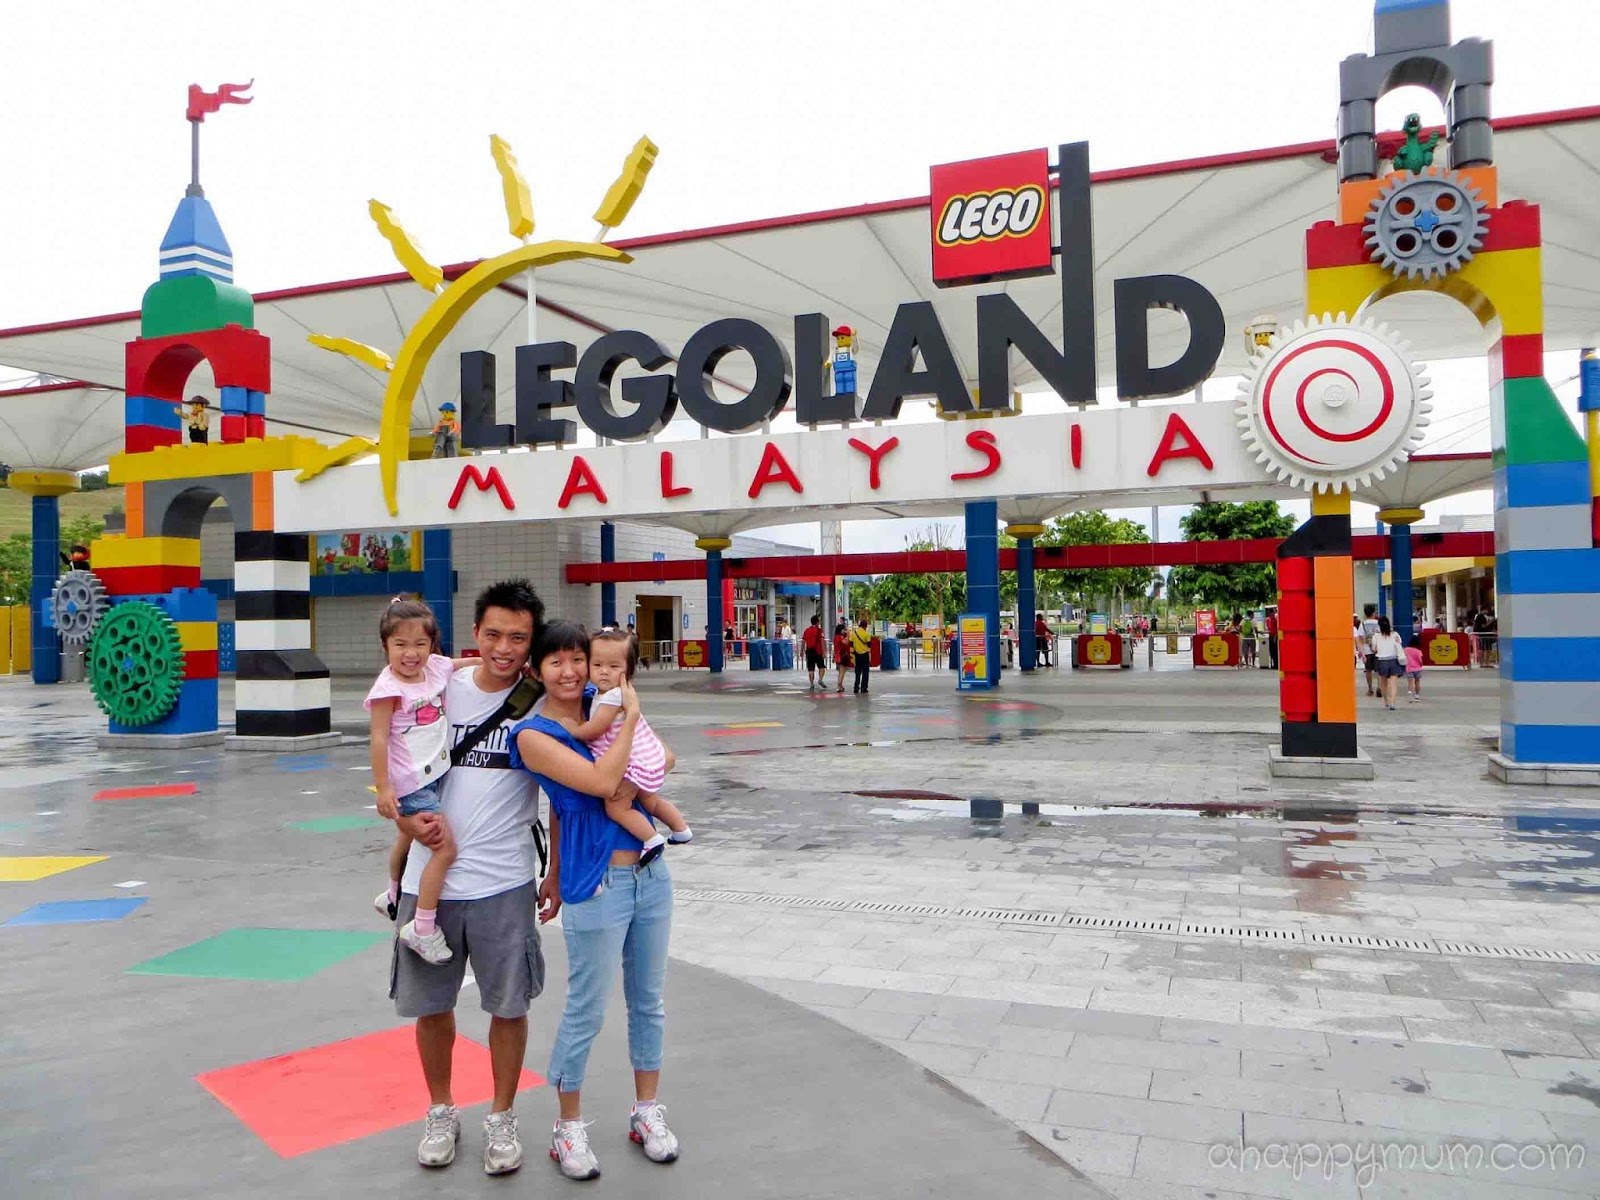 legoland malaysia Legoland malaysia is a popular tourist destination in johor bahru read reviews and explore legoland malaysia tours to book online, find entry tickets price and timings, opening hours, address, nearby attractions and more.